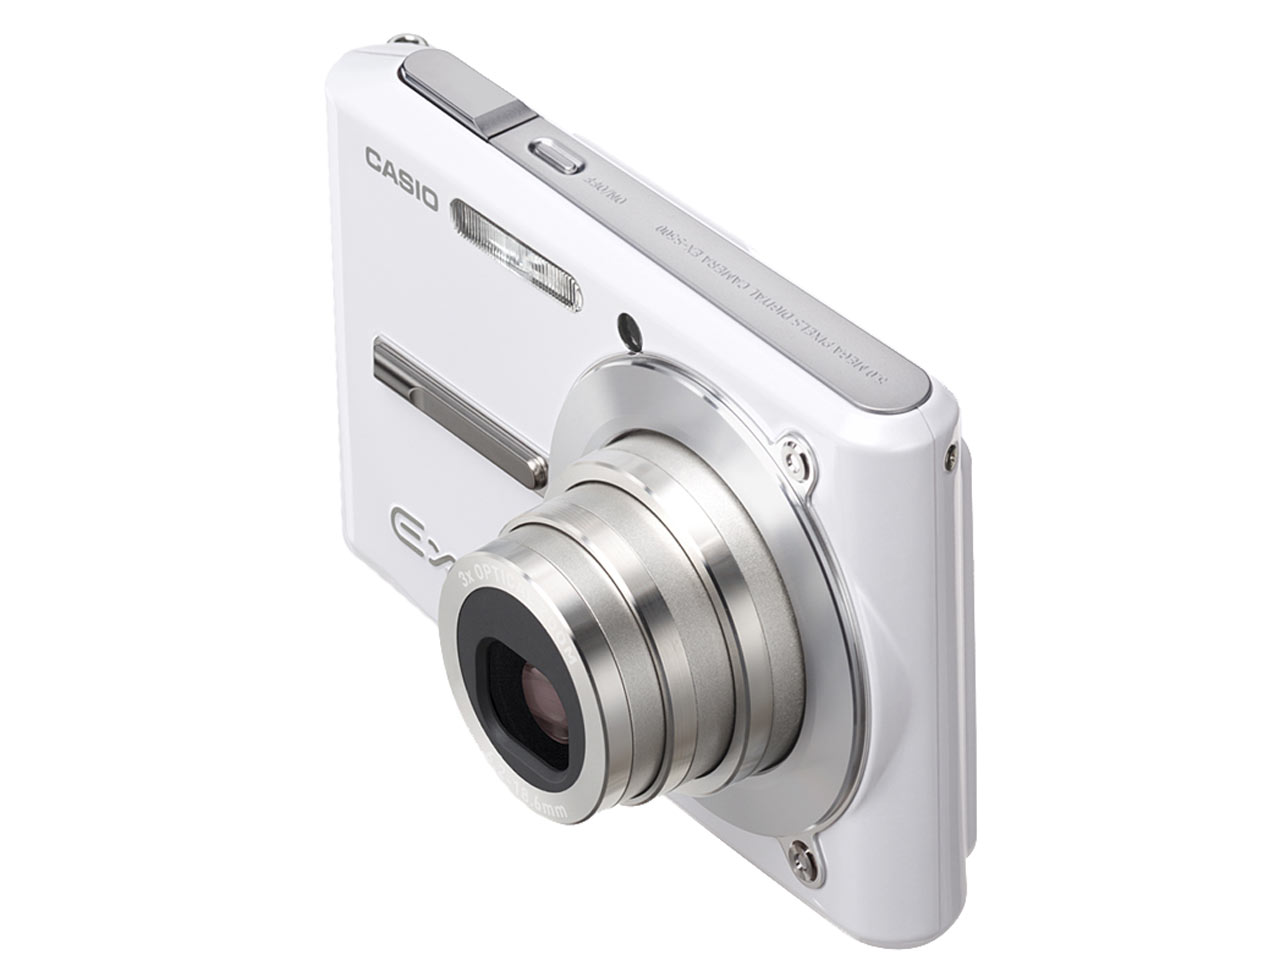 casio exilim ex s500 digital photography review rh dpreview com Casio Exilim User Manual Exilim Casio EX -S8 Manual